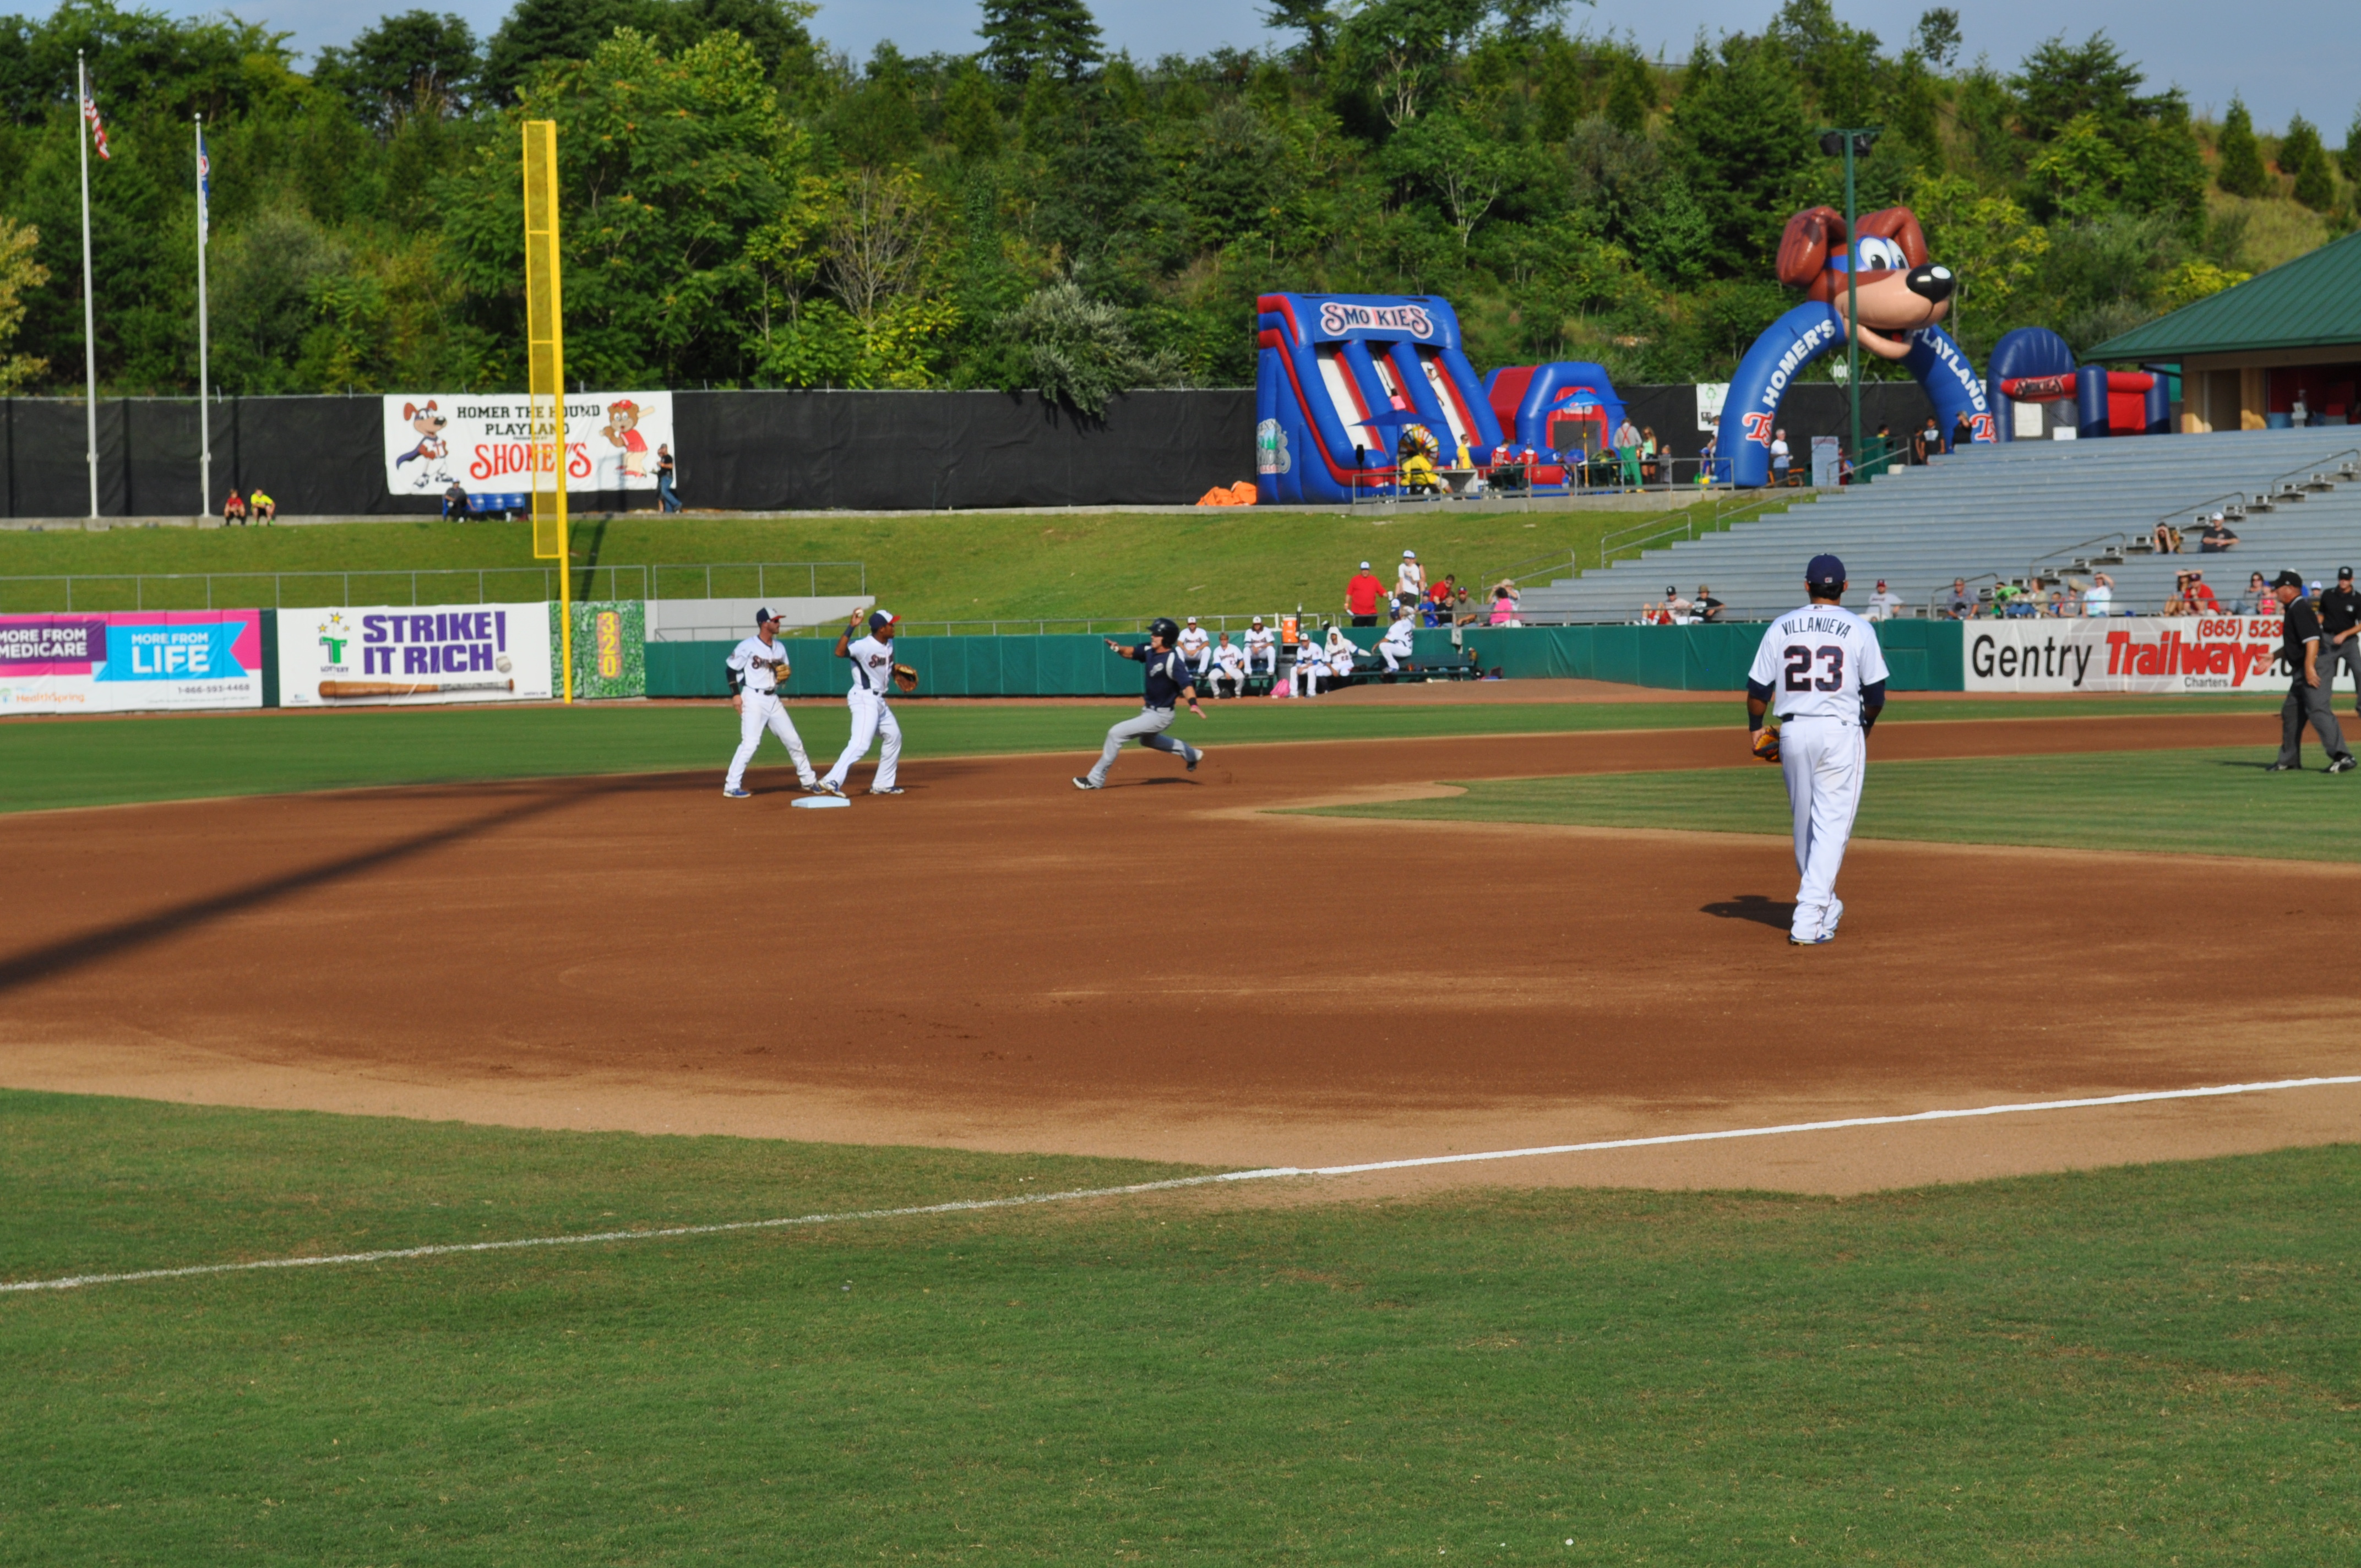 New Cubs super-prospect SS Addison Russell turning the back-end of a nice double-play to end the first inning.